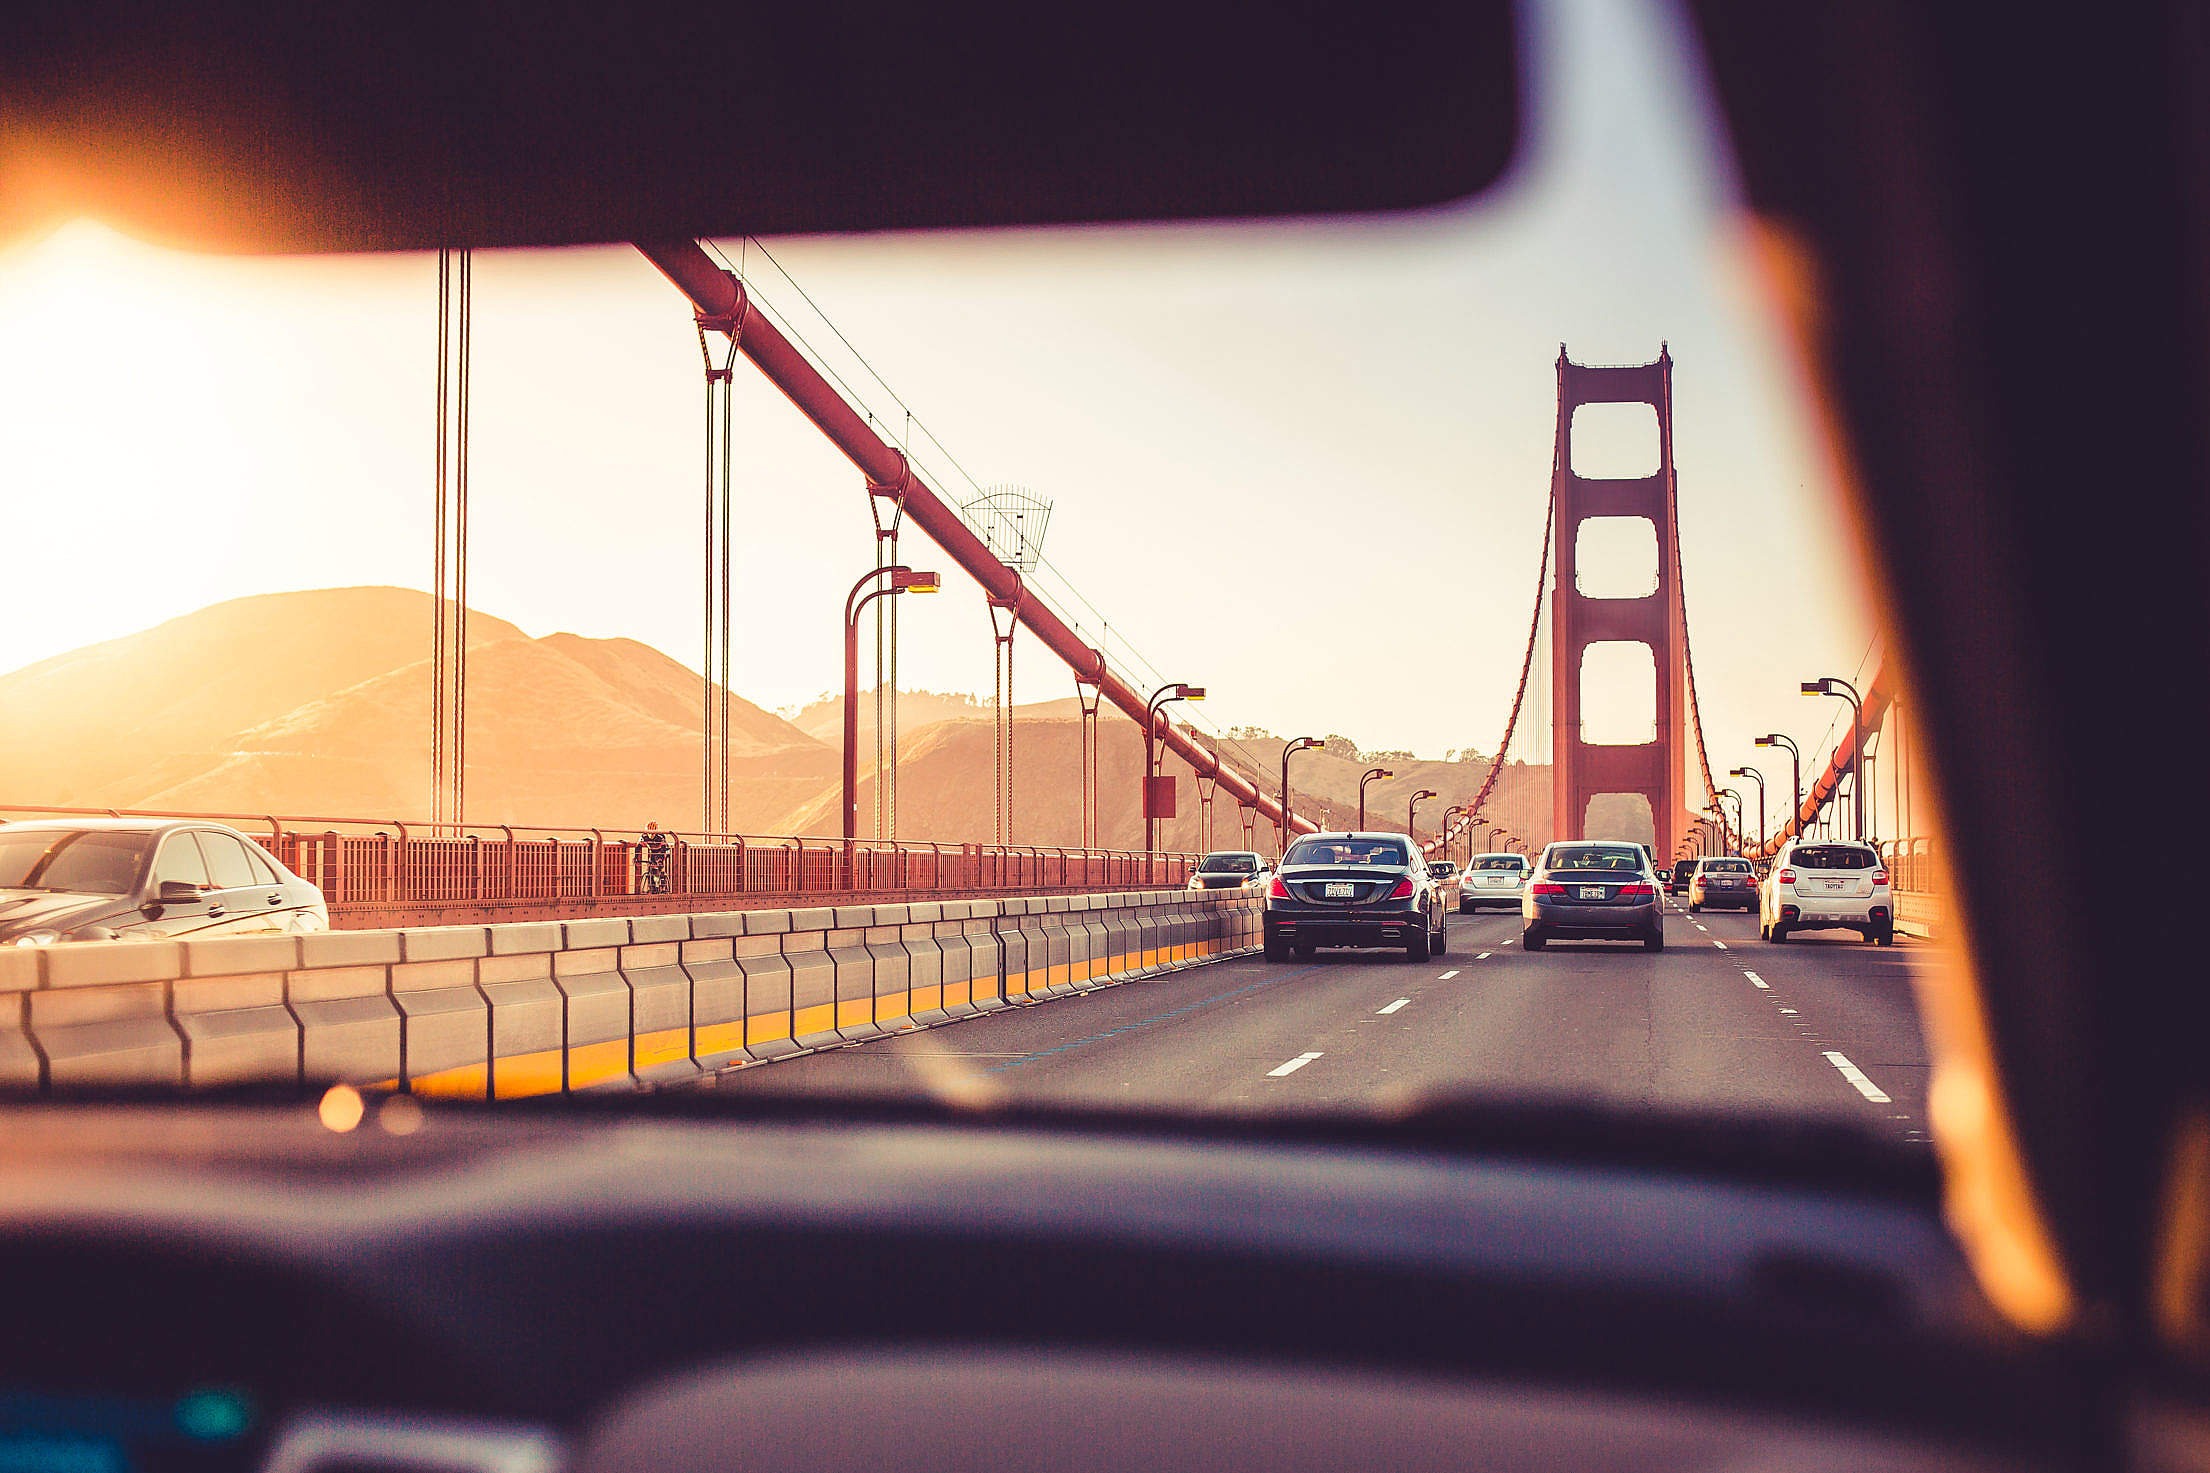 Driving Over The Golden Gate Bridge in Sunset Free Stock Photo